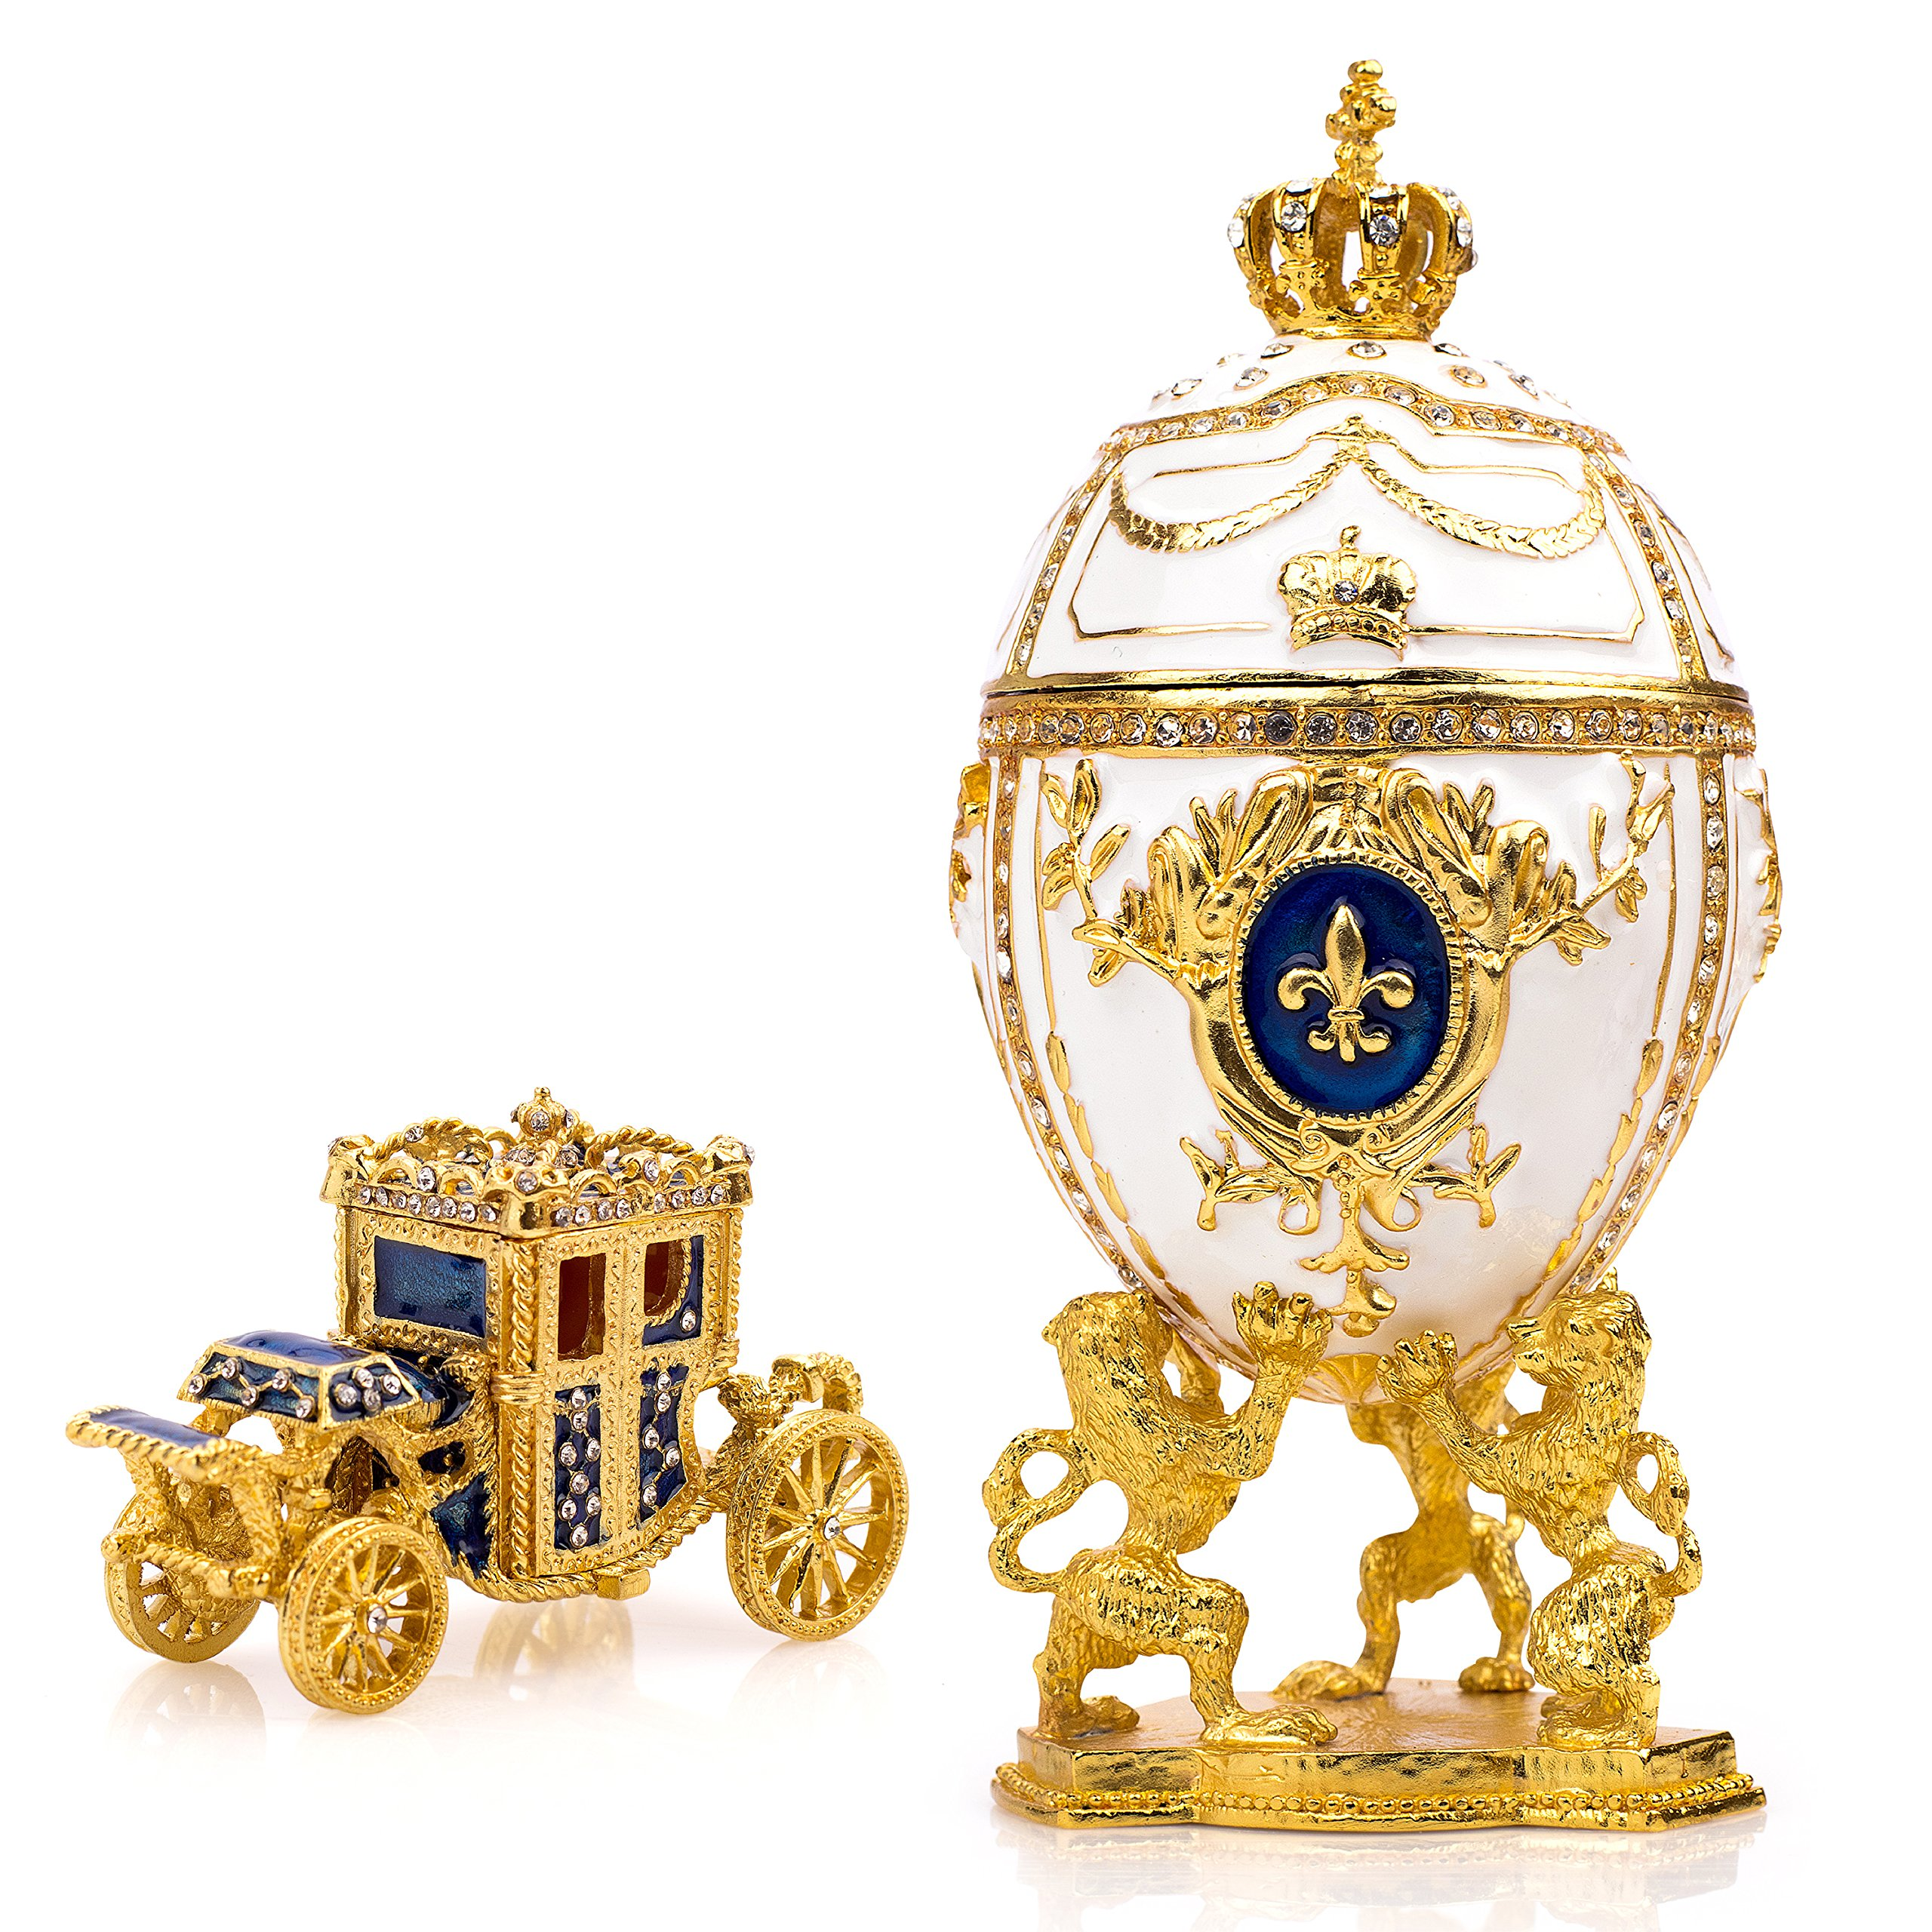 Unique, Decorative White Faberge Egg: Extra Large 6.6 inches, Hand Painted Jewelry Box for The Ultimate Home Décor, Comes with Gift Faberge Carriage, Store Your Rings, Earrings and Jewelry in Style